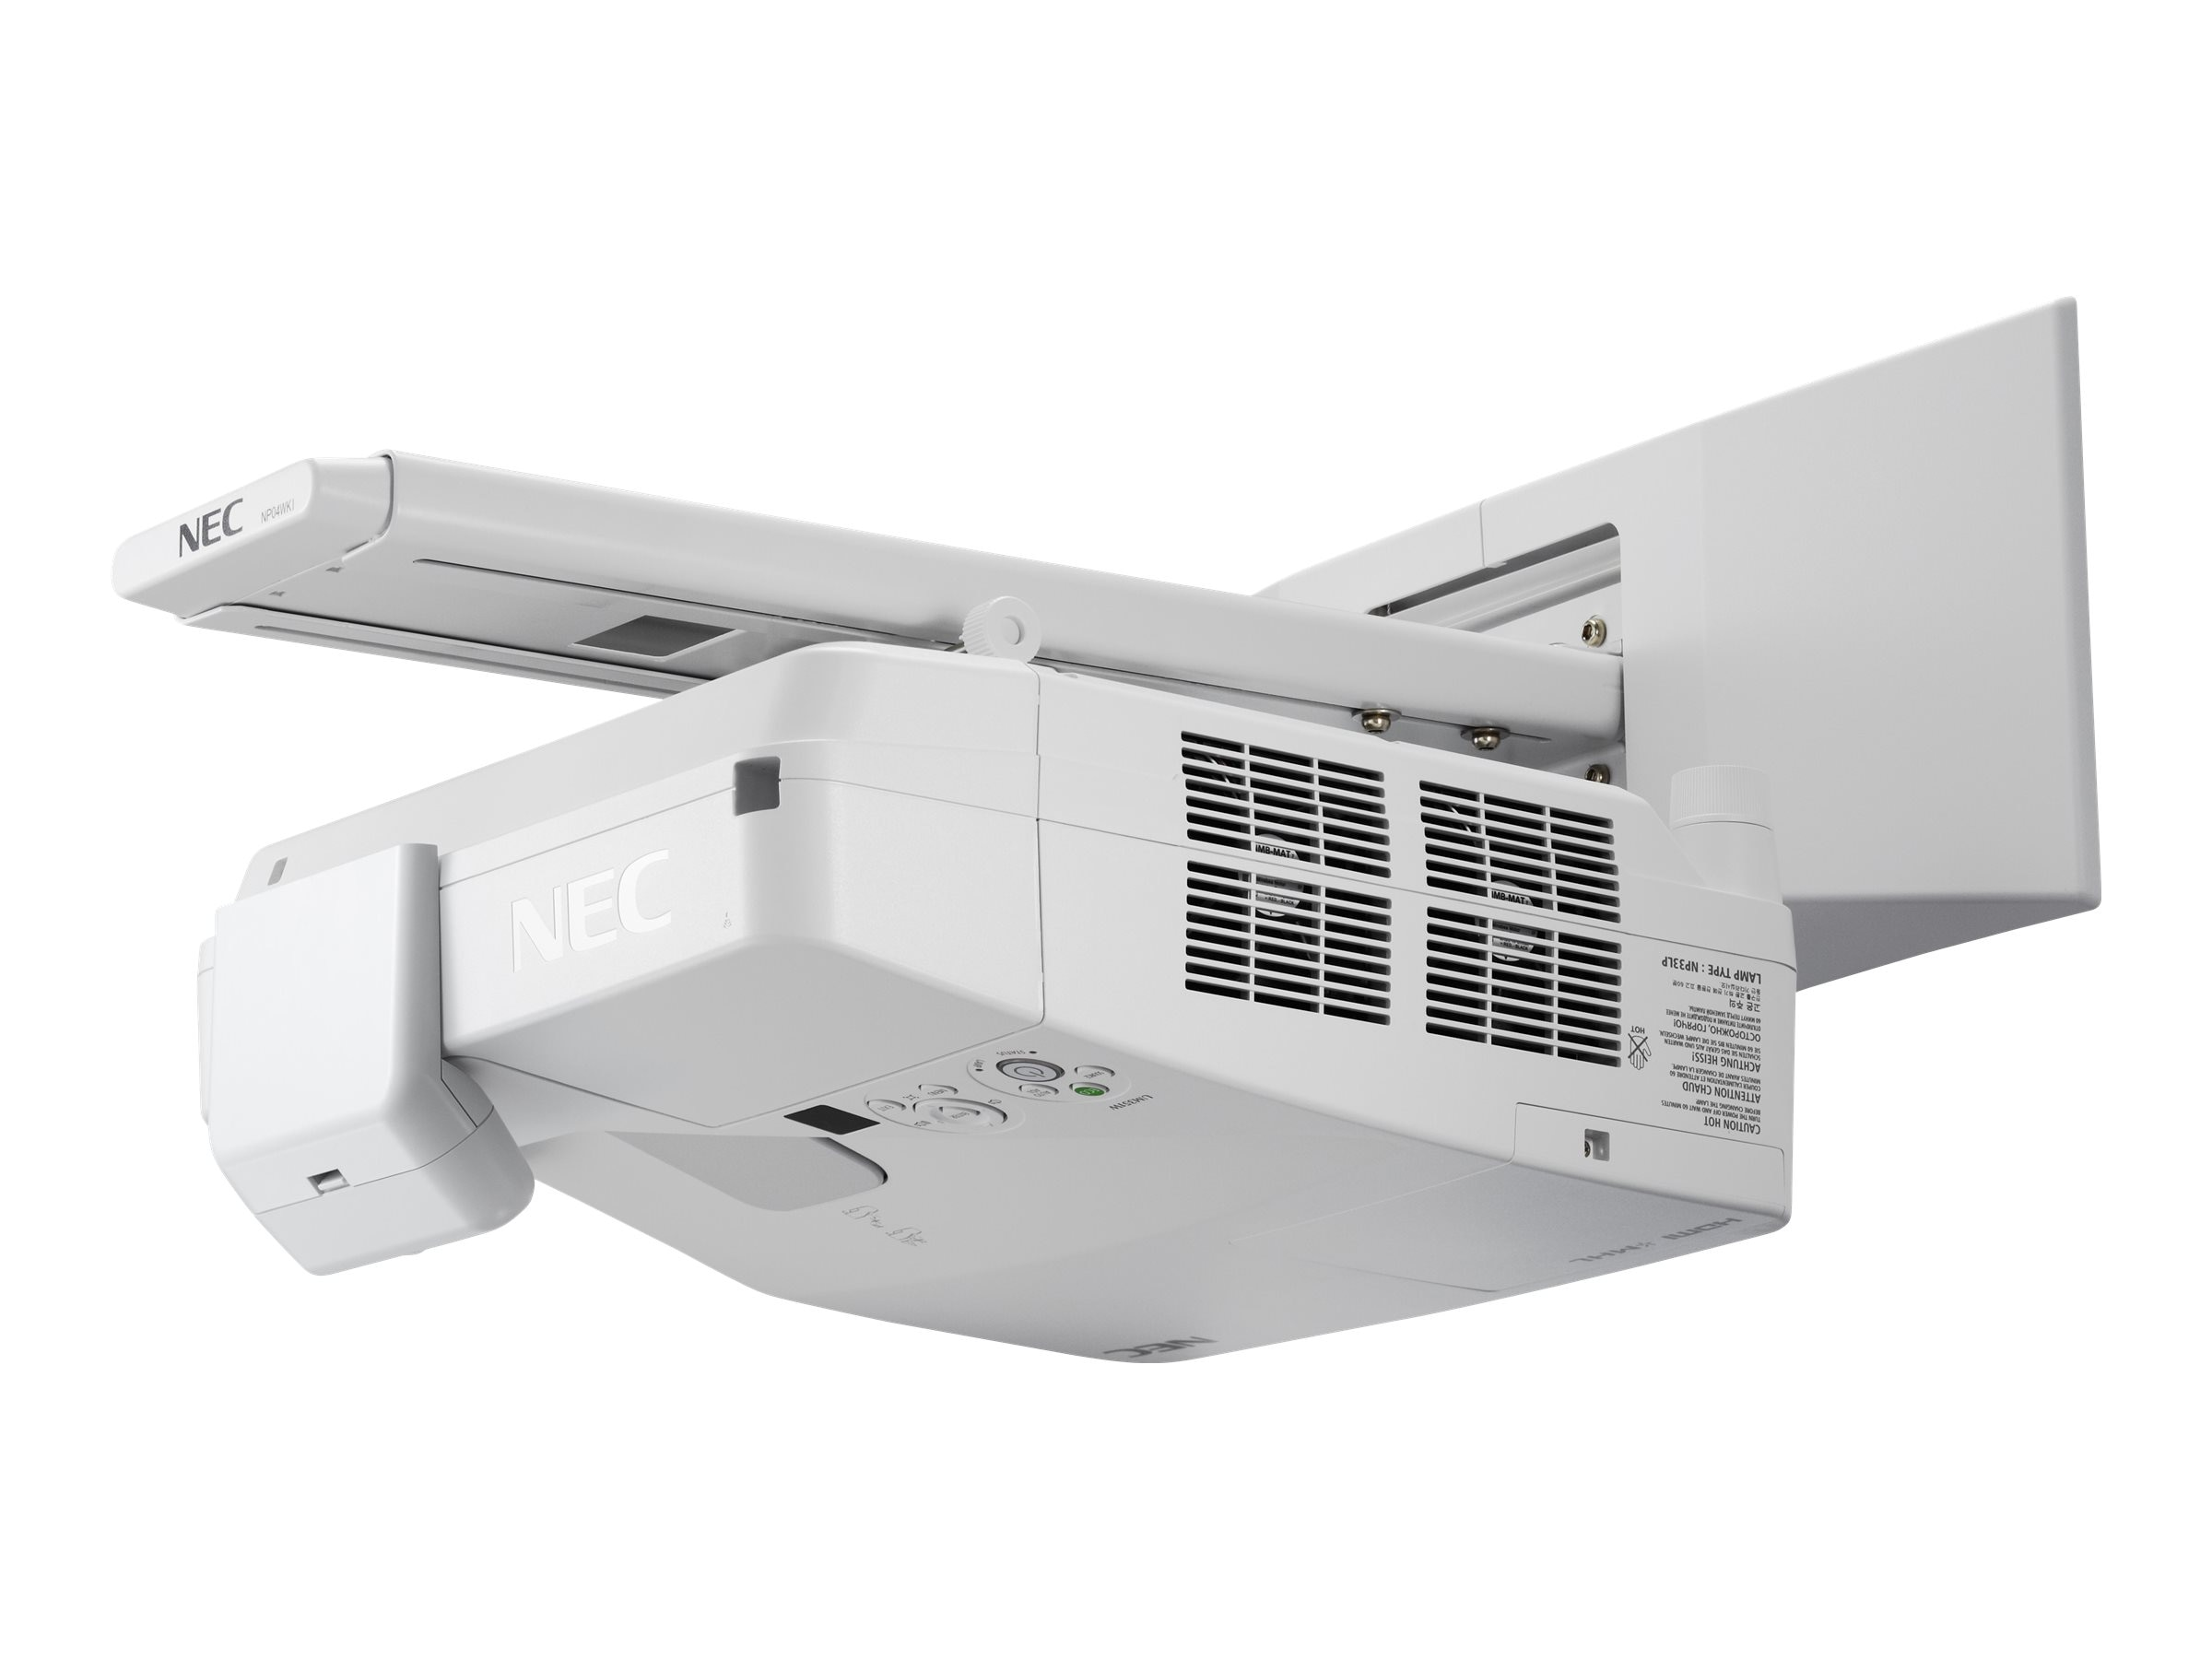 NEC UM351W Ultra Short Throw LCD Projector, 3500 Lumens, White with Wall Mount